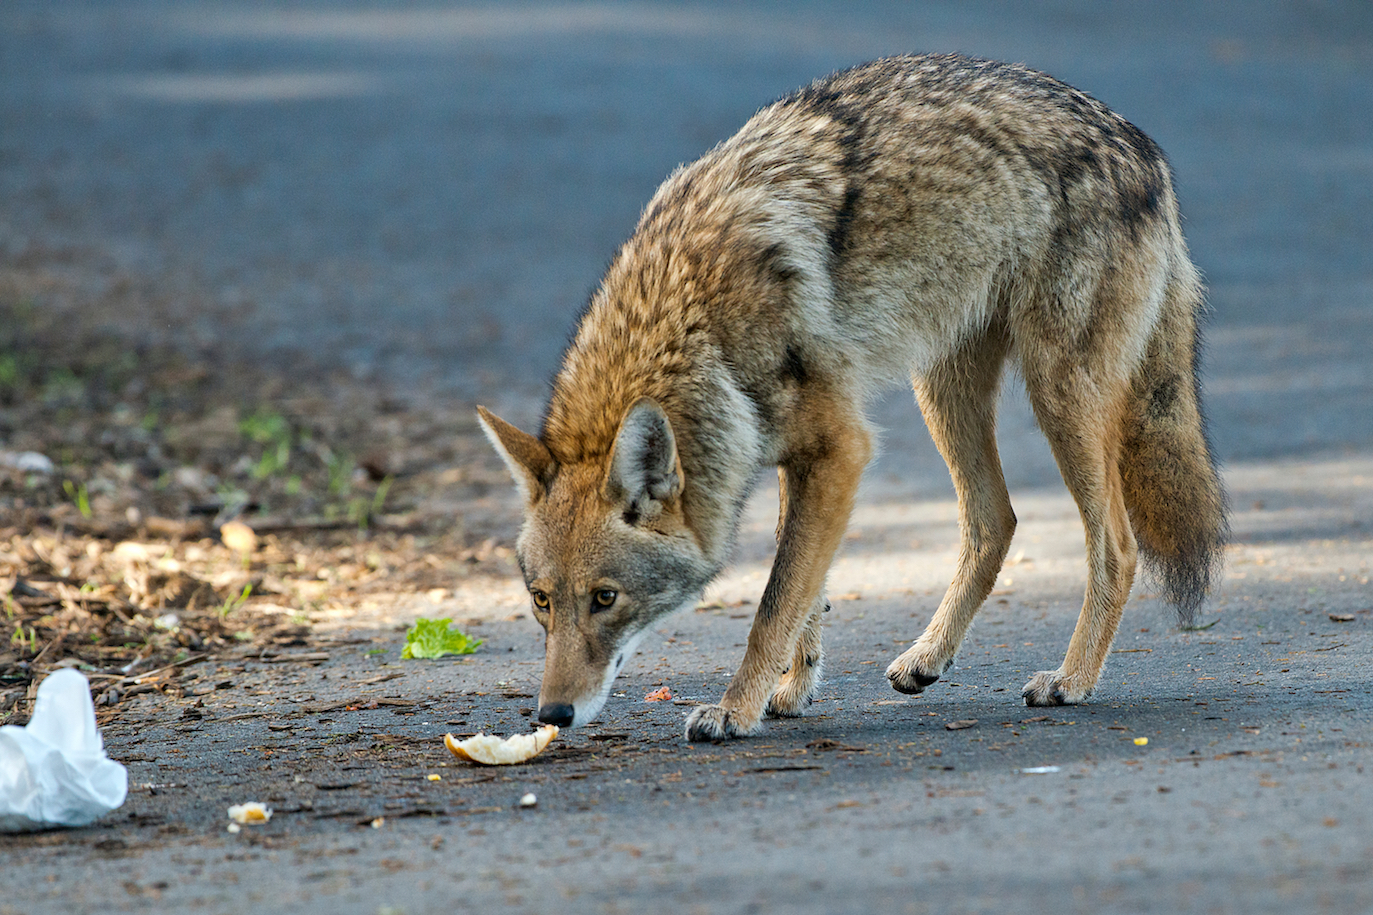 Coyotes have expanded across North America, but when they migrated and where they came from has been heavily debated. Using museum specimens and fossil records, a team of experts has now produced an unprecedented range history of coyotes.